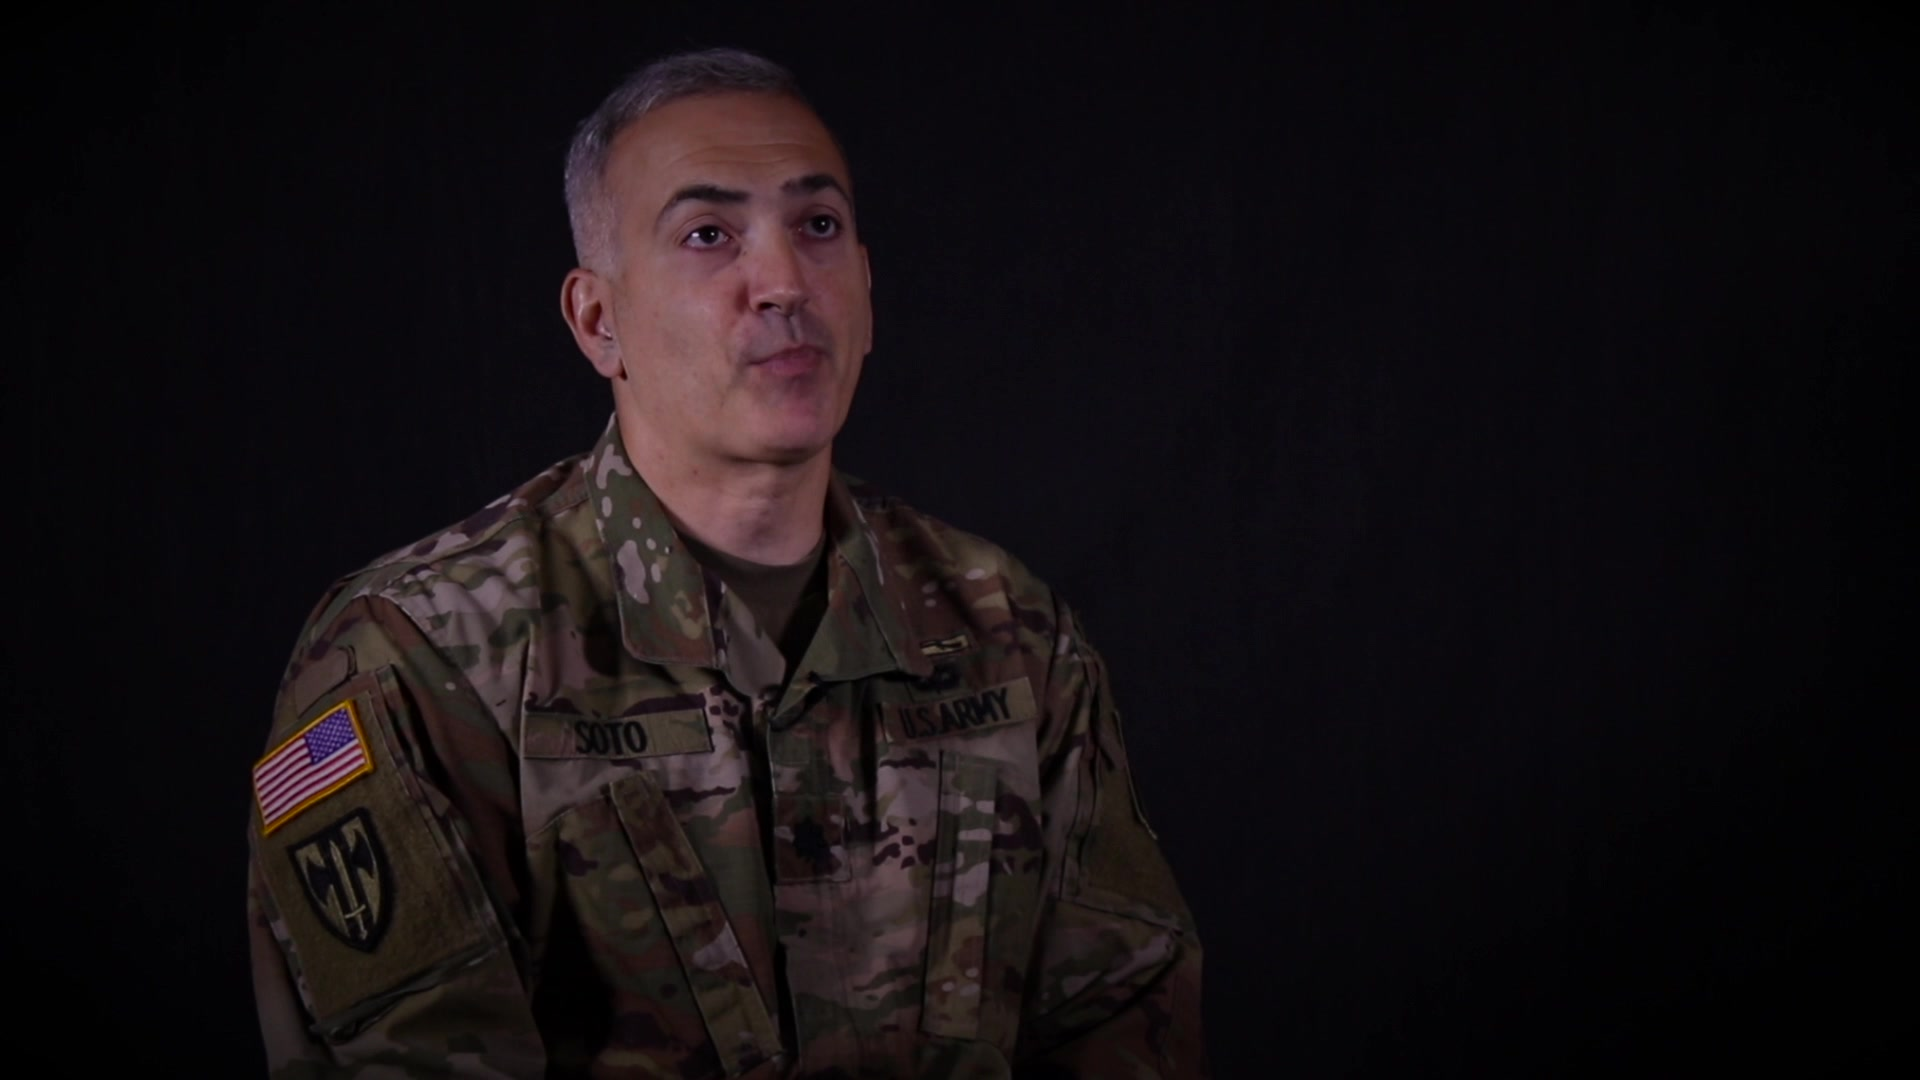 Lt. Col. John Soto is an Active Guard Reserve Soldier assigned to the 143d Sustainment Command (Expeditionary) in Orlando, Fla. In this interview, Lt. Col. Soto shares why he joined and continues to serve in the U.S. Army Reserve. (U.S. Army video by Spc. Leon Orange)